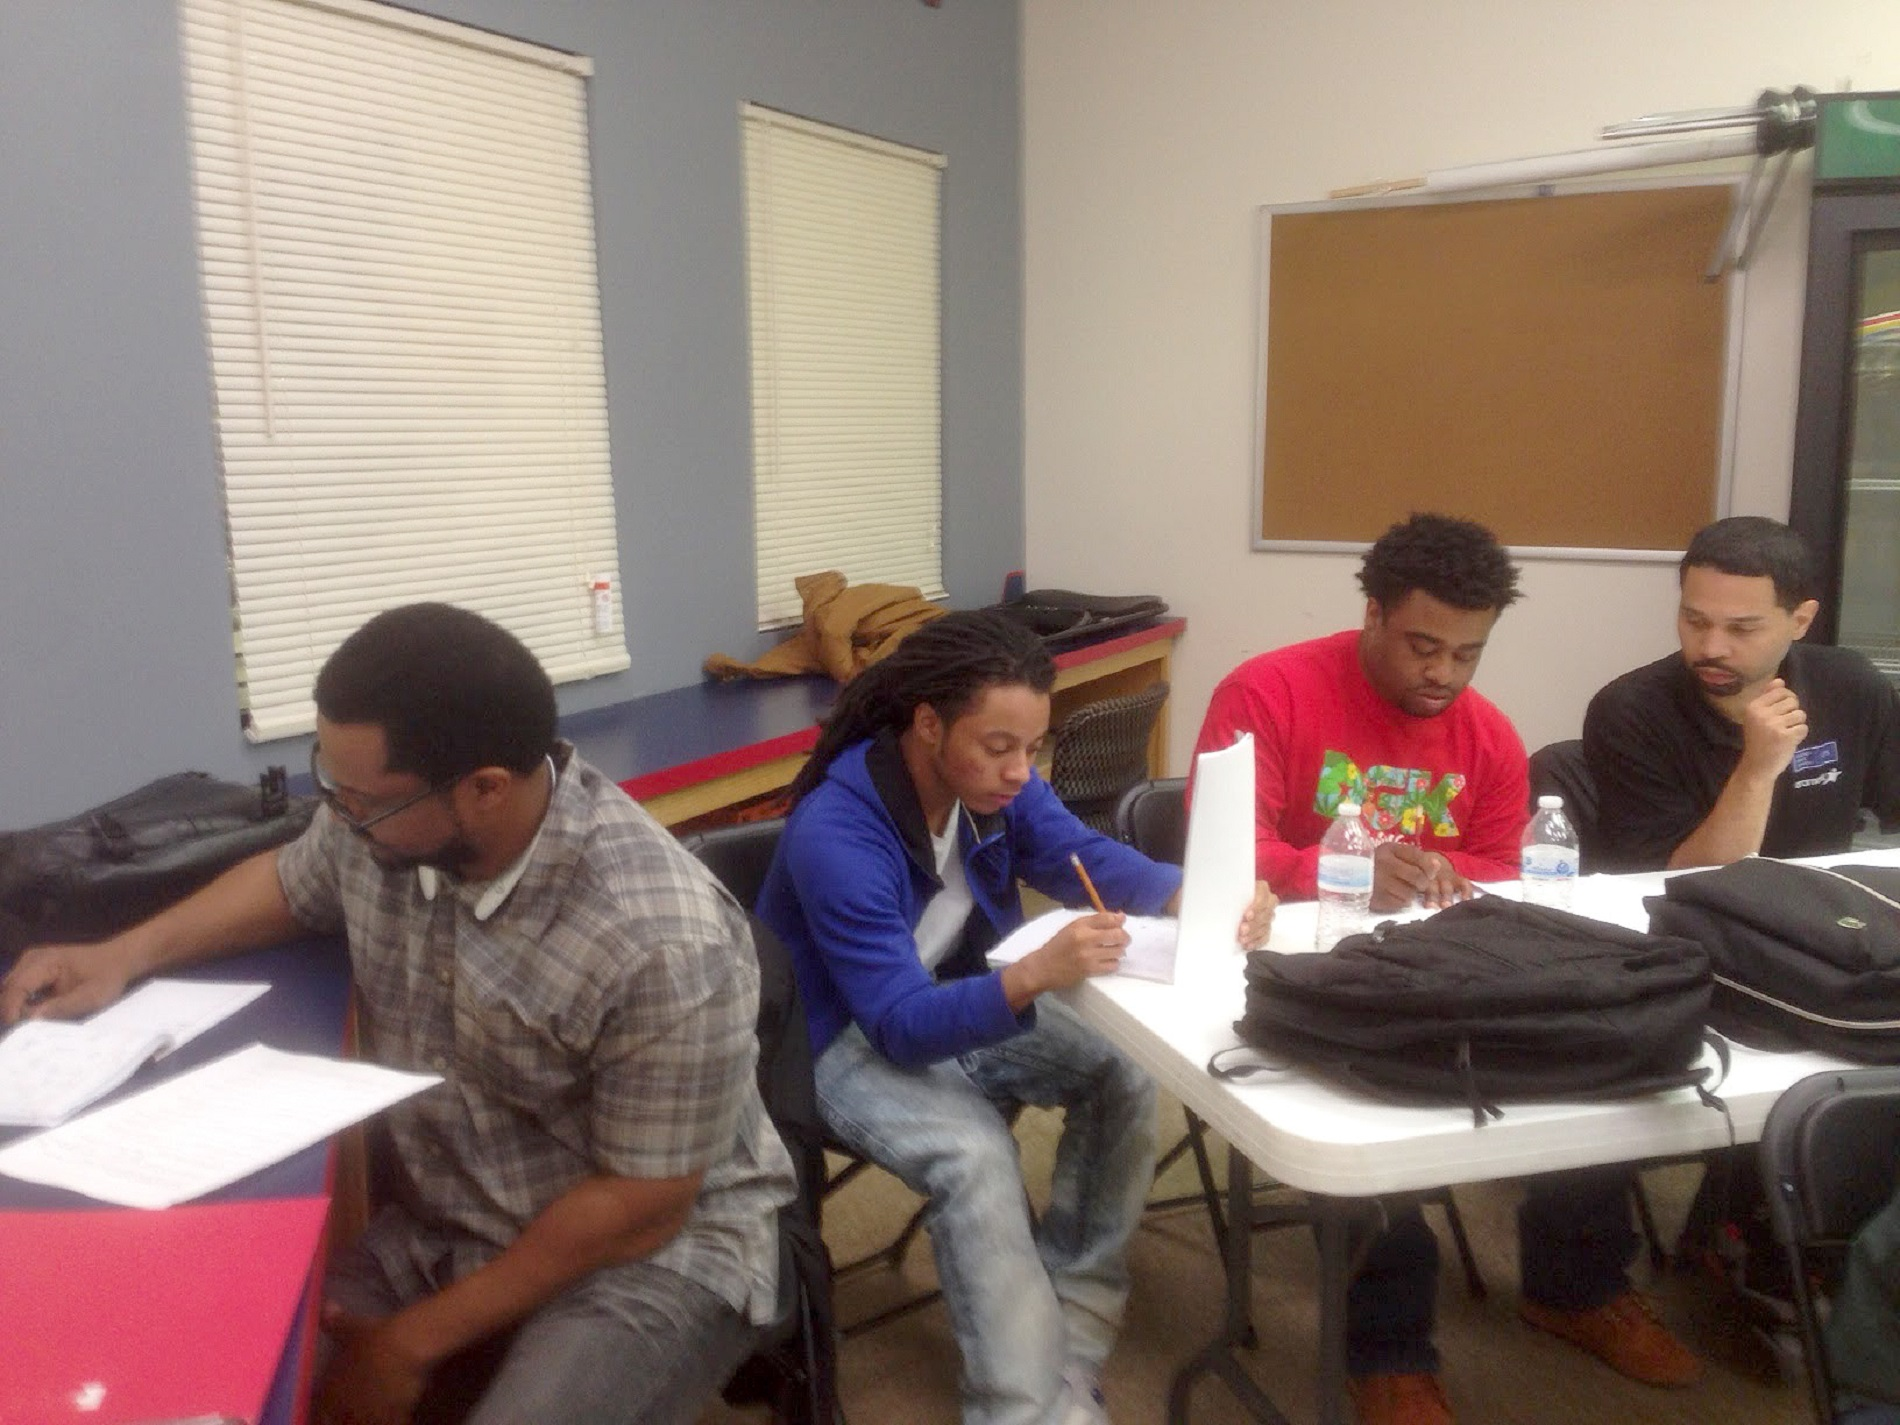 Students in a job-training program at Austin People's Action Center had computers to work on, until late March, 2016, when a state agency reclaimed them. Now they do their work on paper and pencil. (WBEZ/Dan Weissmann)